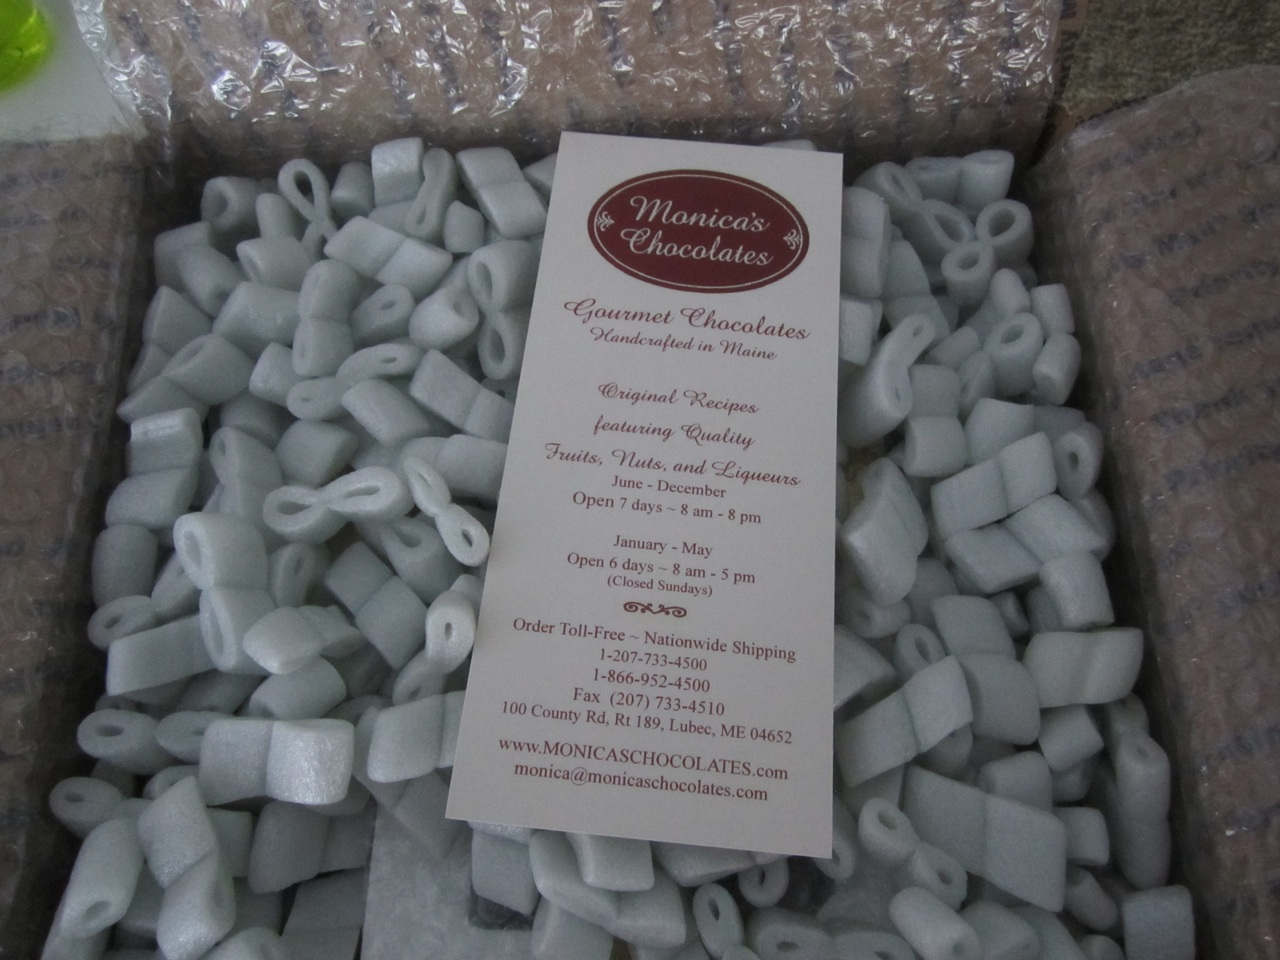 Monica's Chocolate's Arrived Today!